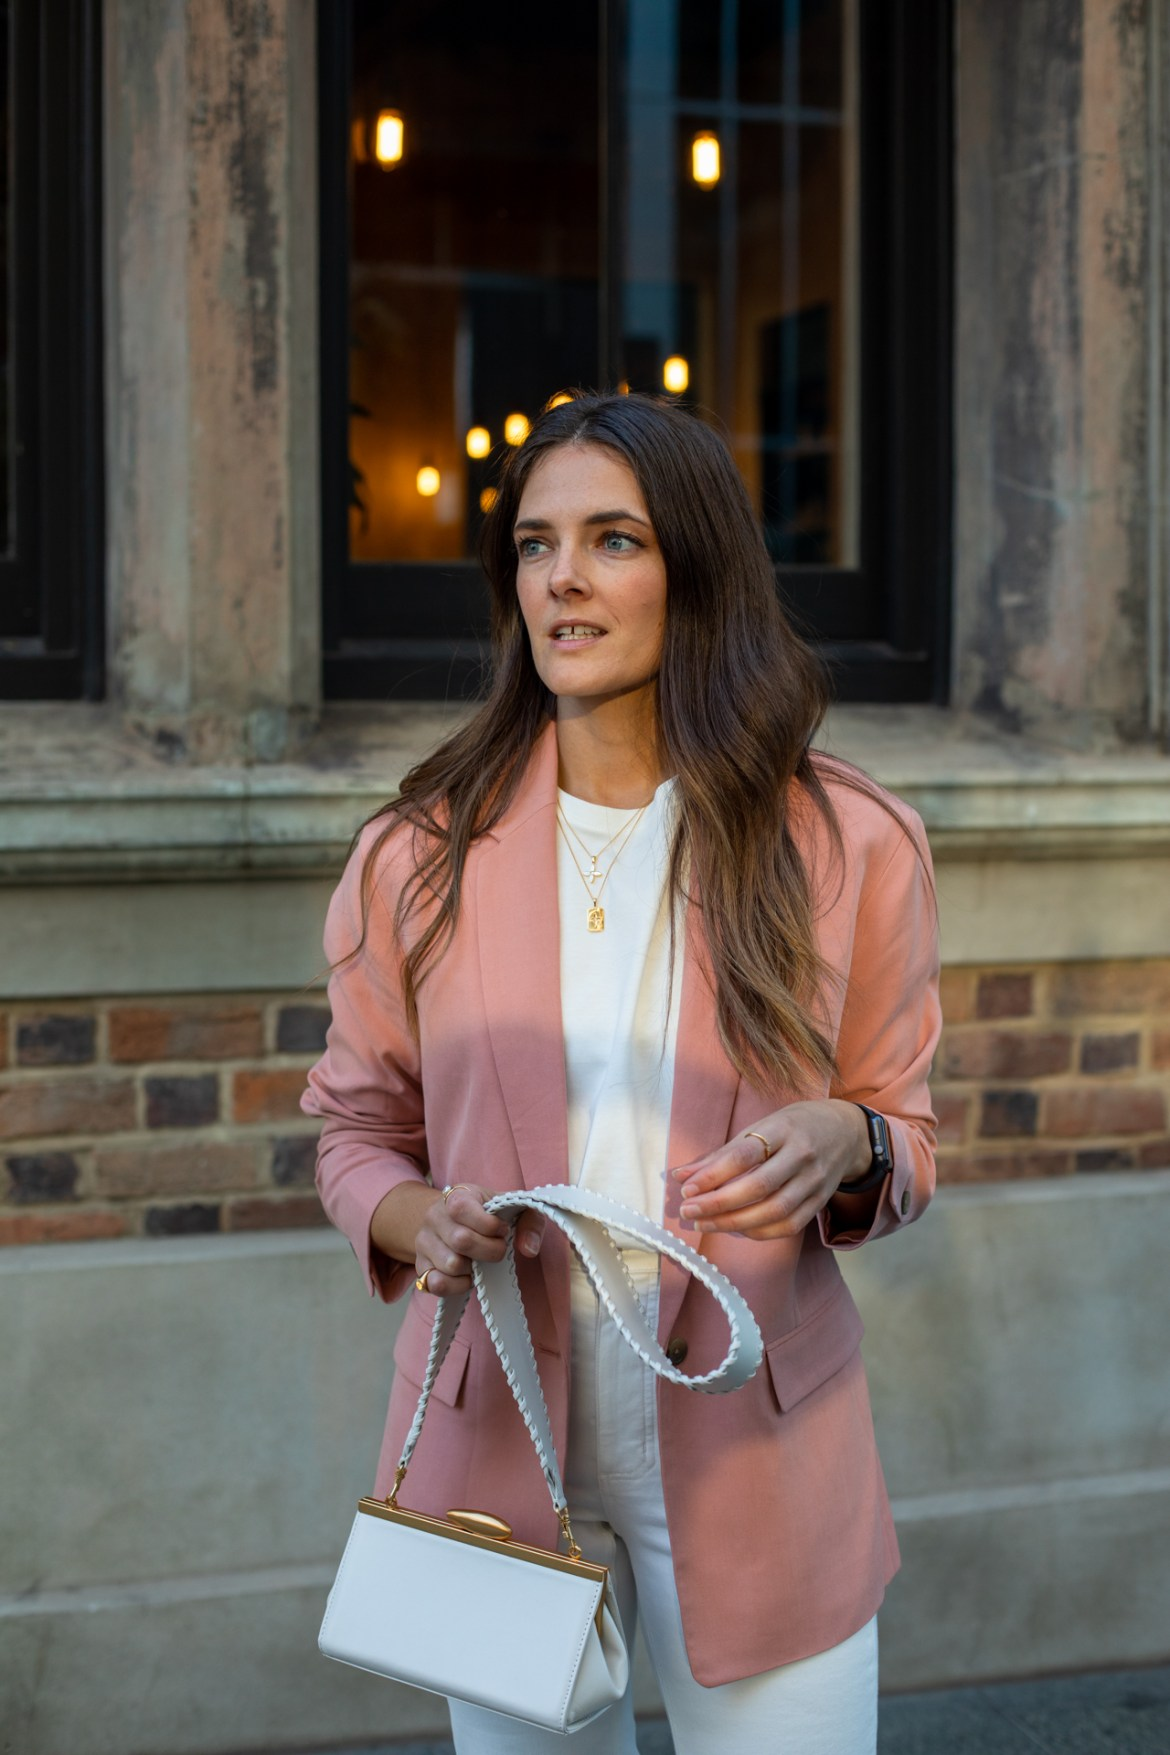 Dusty pink blazer worn with white handbag for a chic fall or spring outfit ready for the office or a weekend brunch